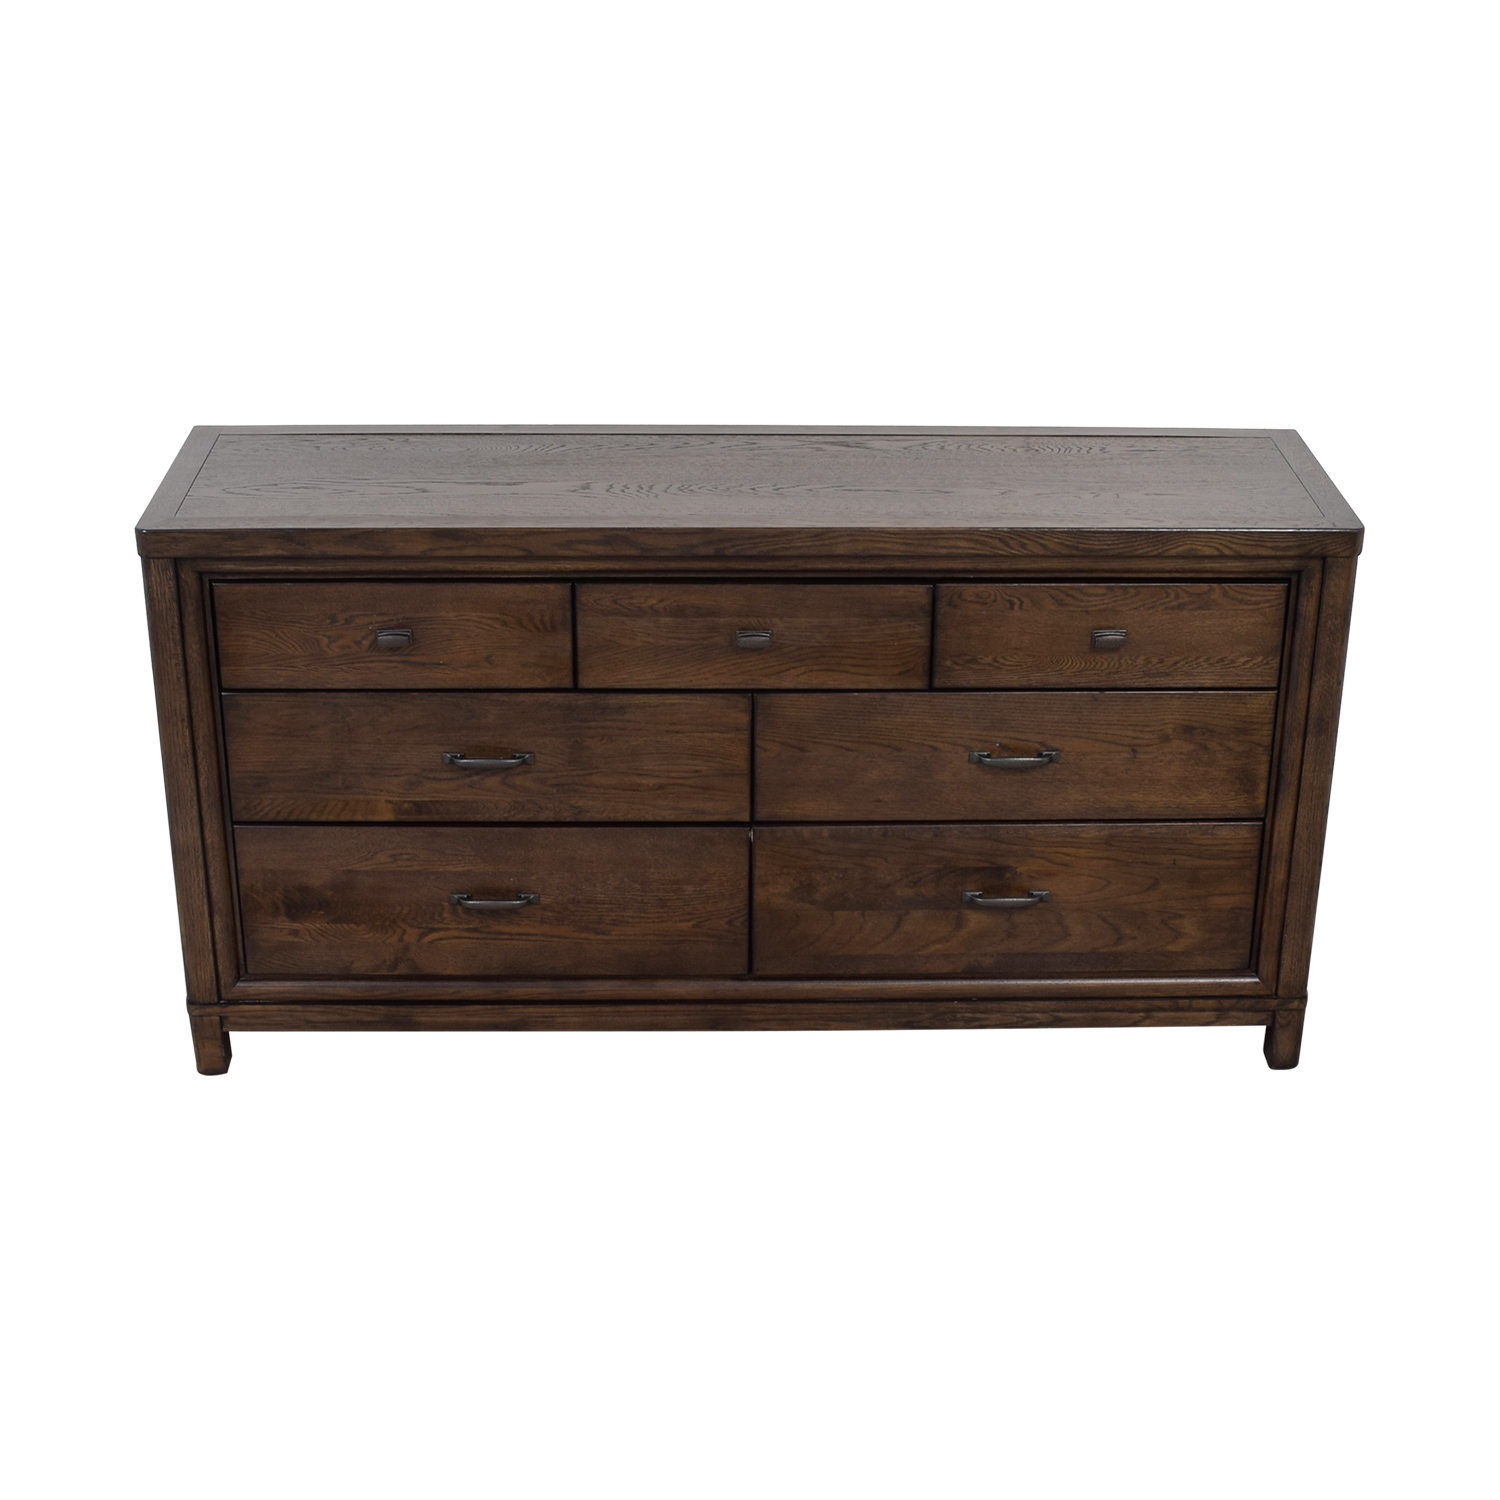 Pennsylvania House Pennsylvania House Seven-Drawer Wood Dresser coupon